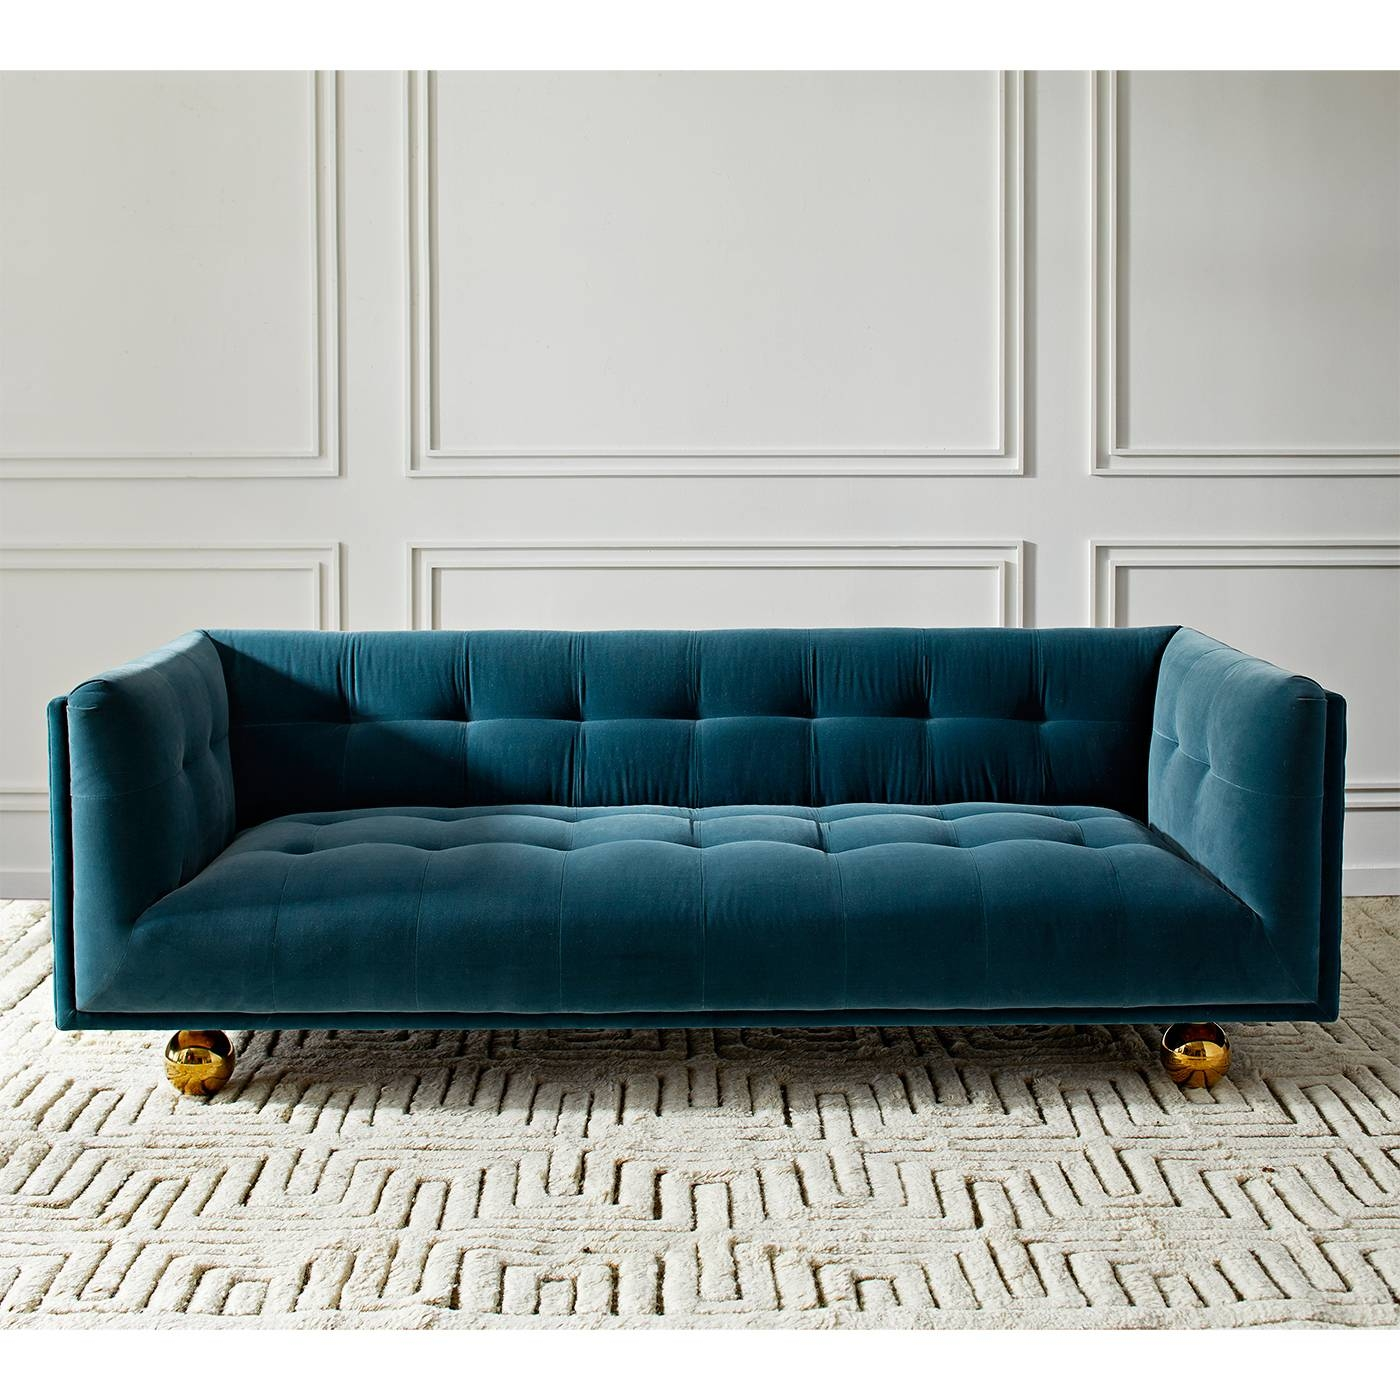 Furniture: Enchanting Design Of Turquoise Sofa For Lovely Home in Cool Sofa Ideas (Image 18 of 30)